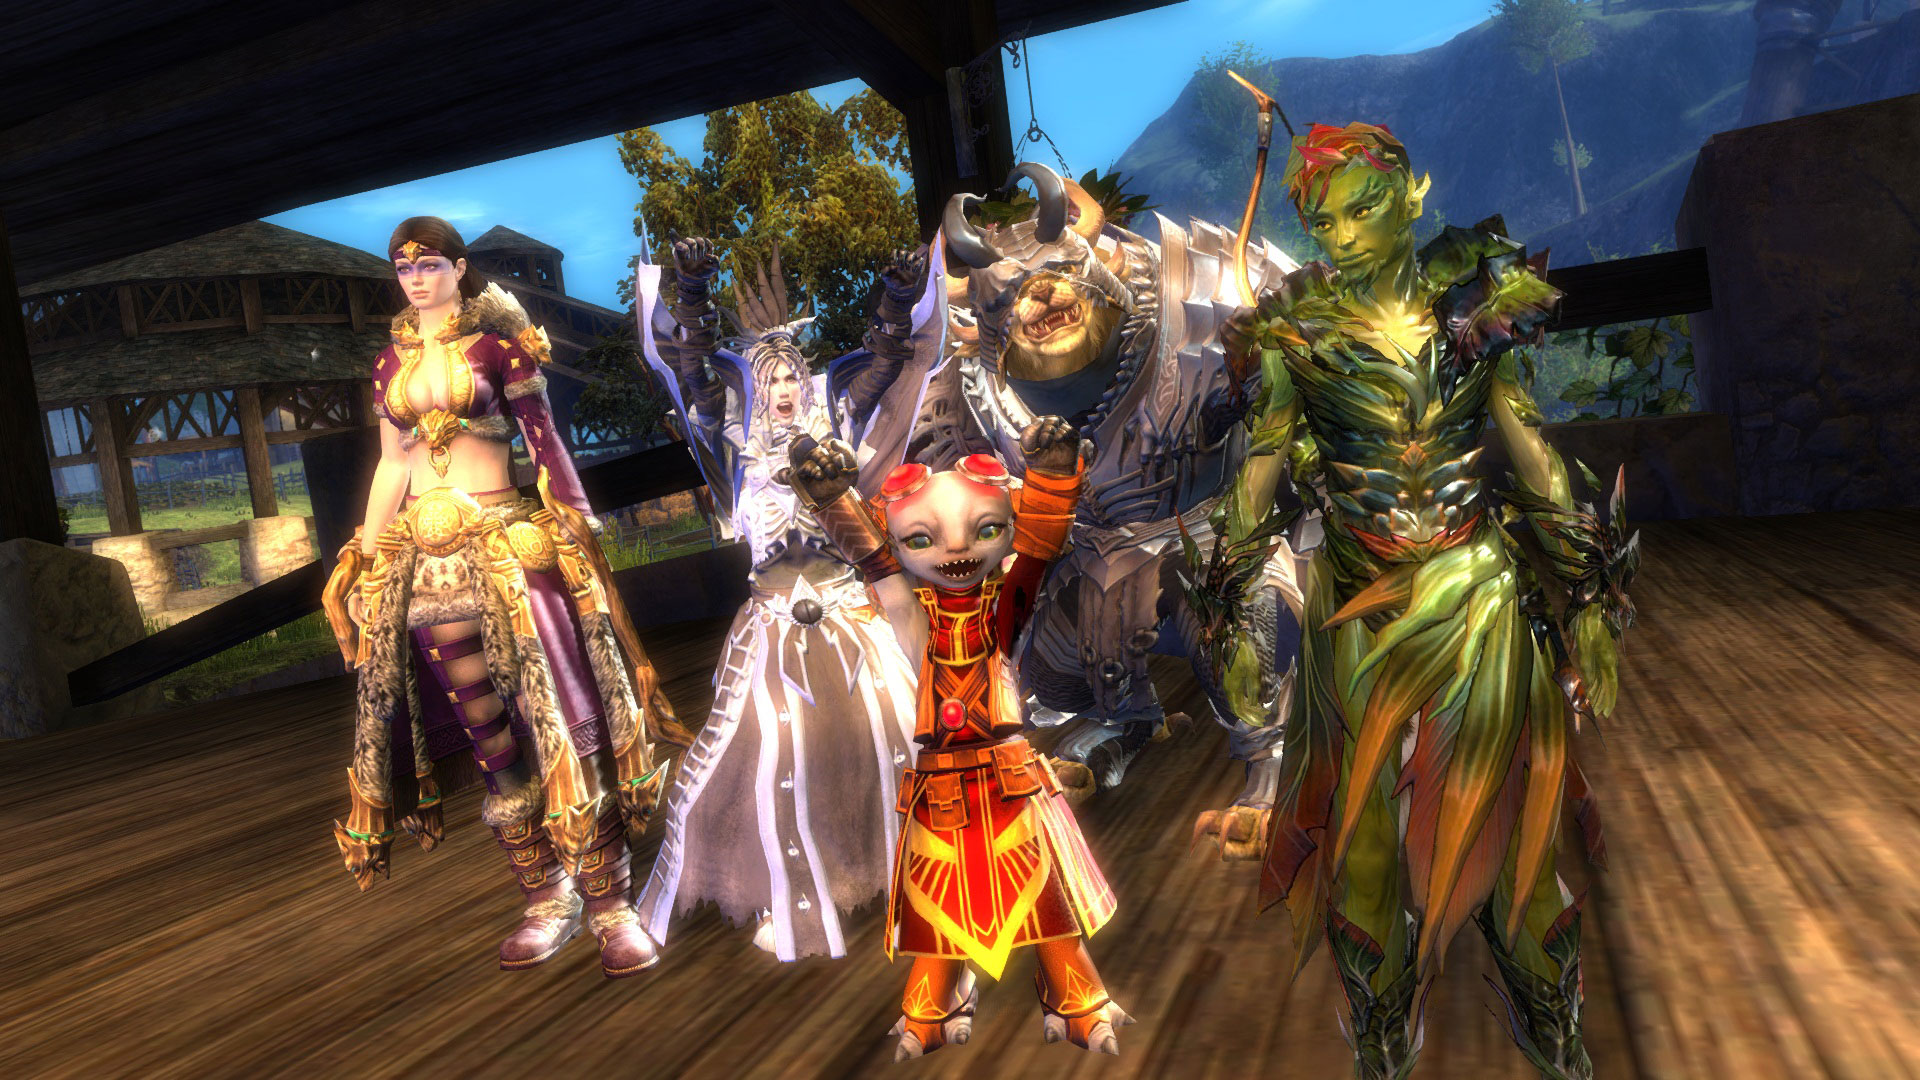 engineer guildwars2com - photo #17